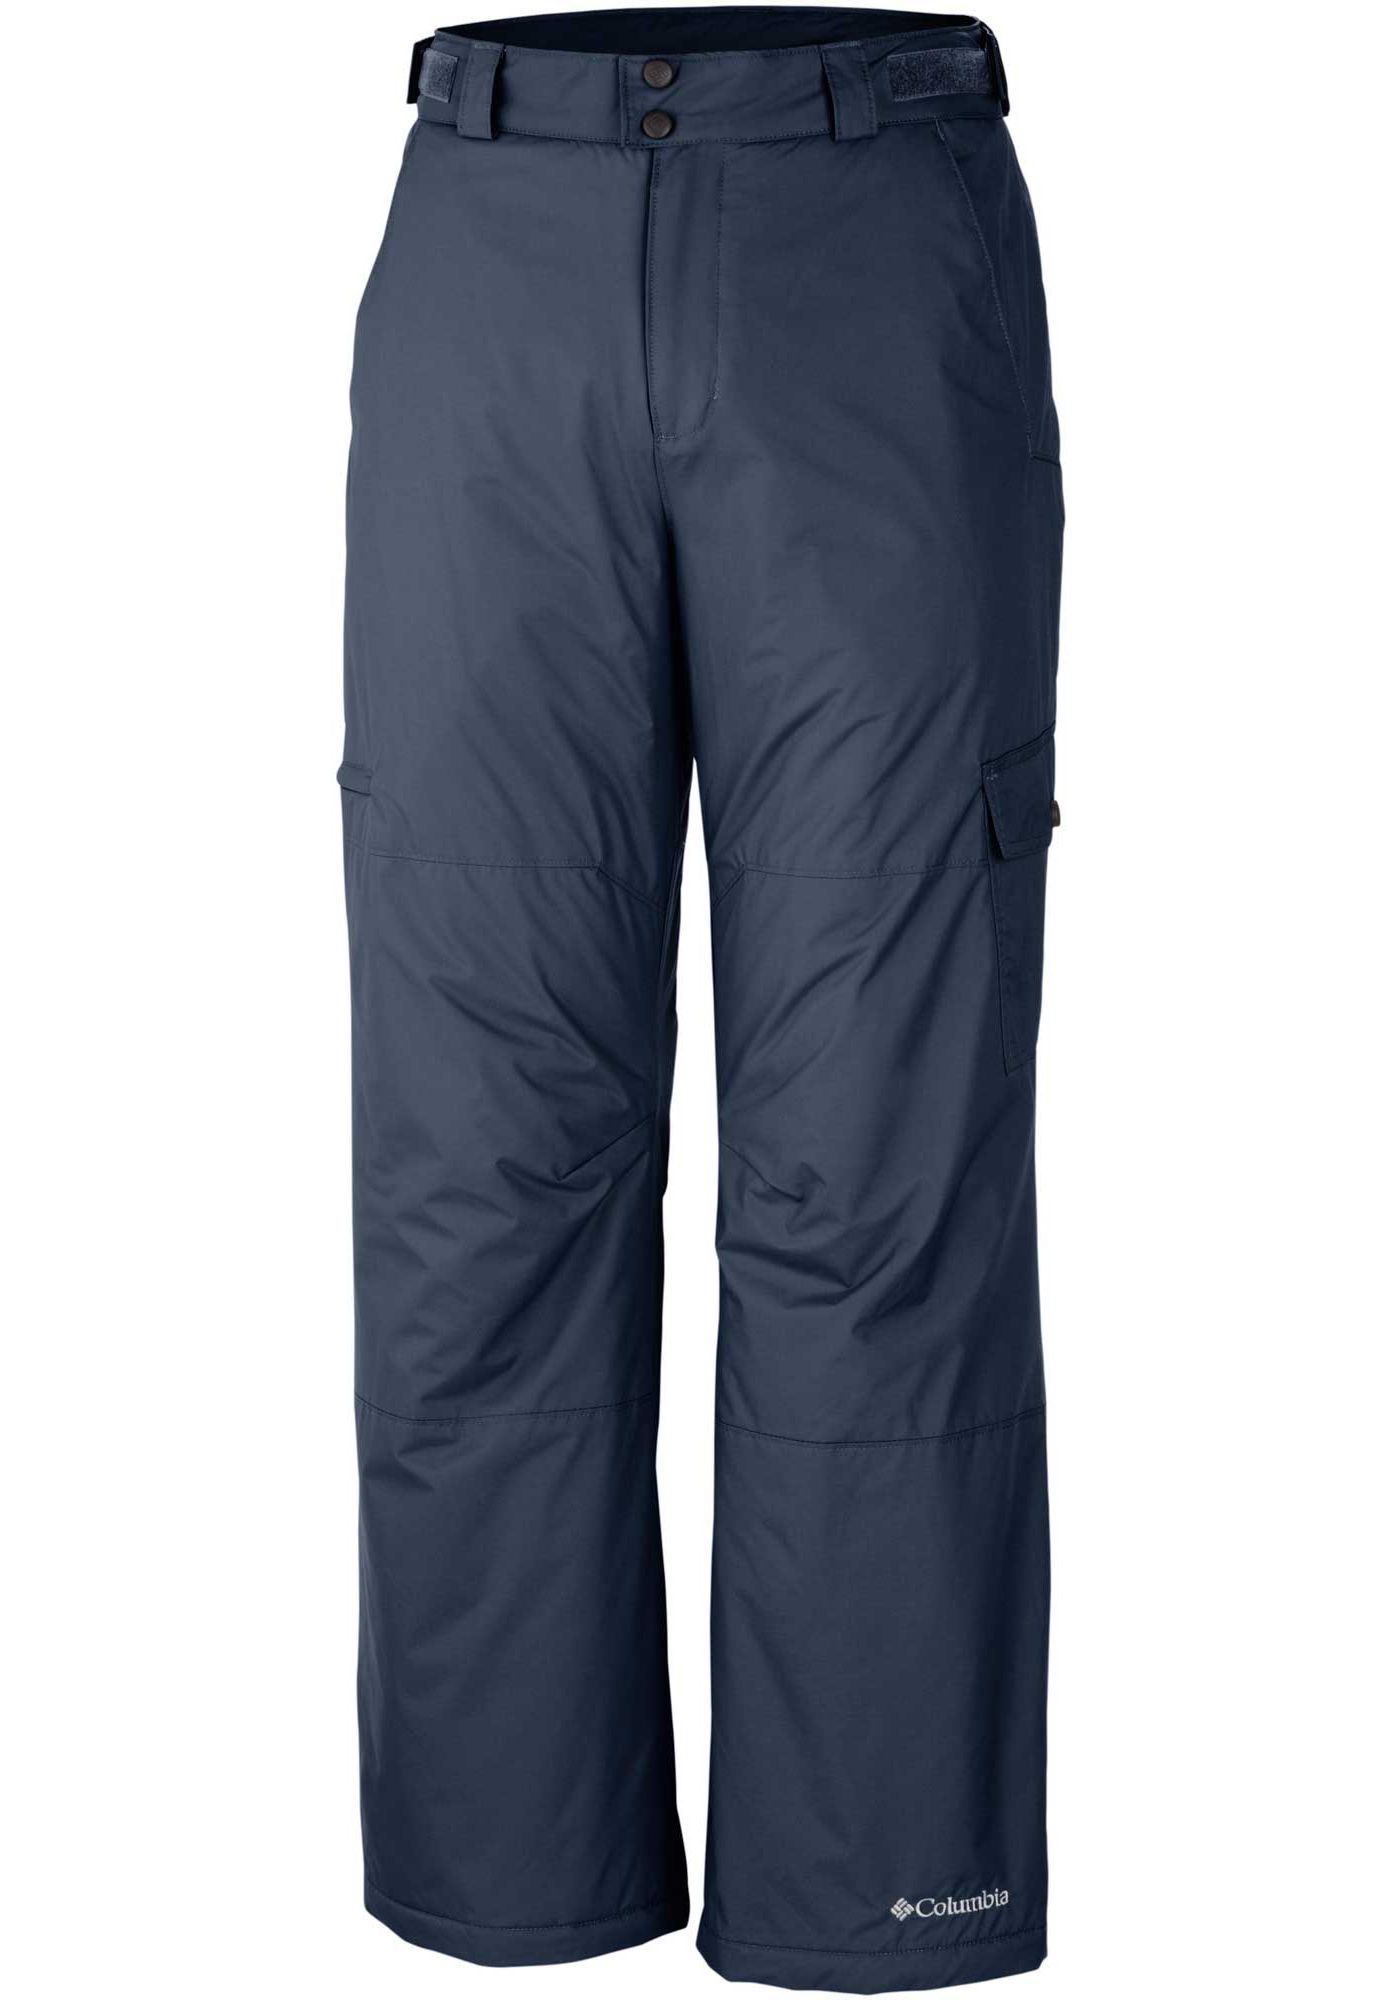 Columbia Men's Snow Gun Pants